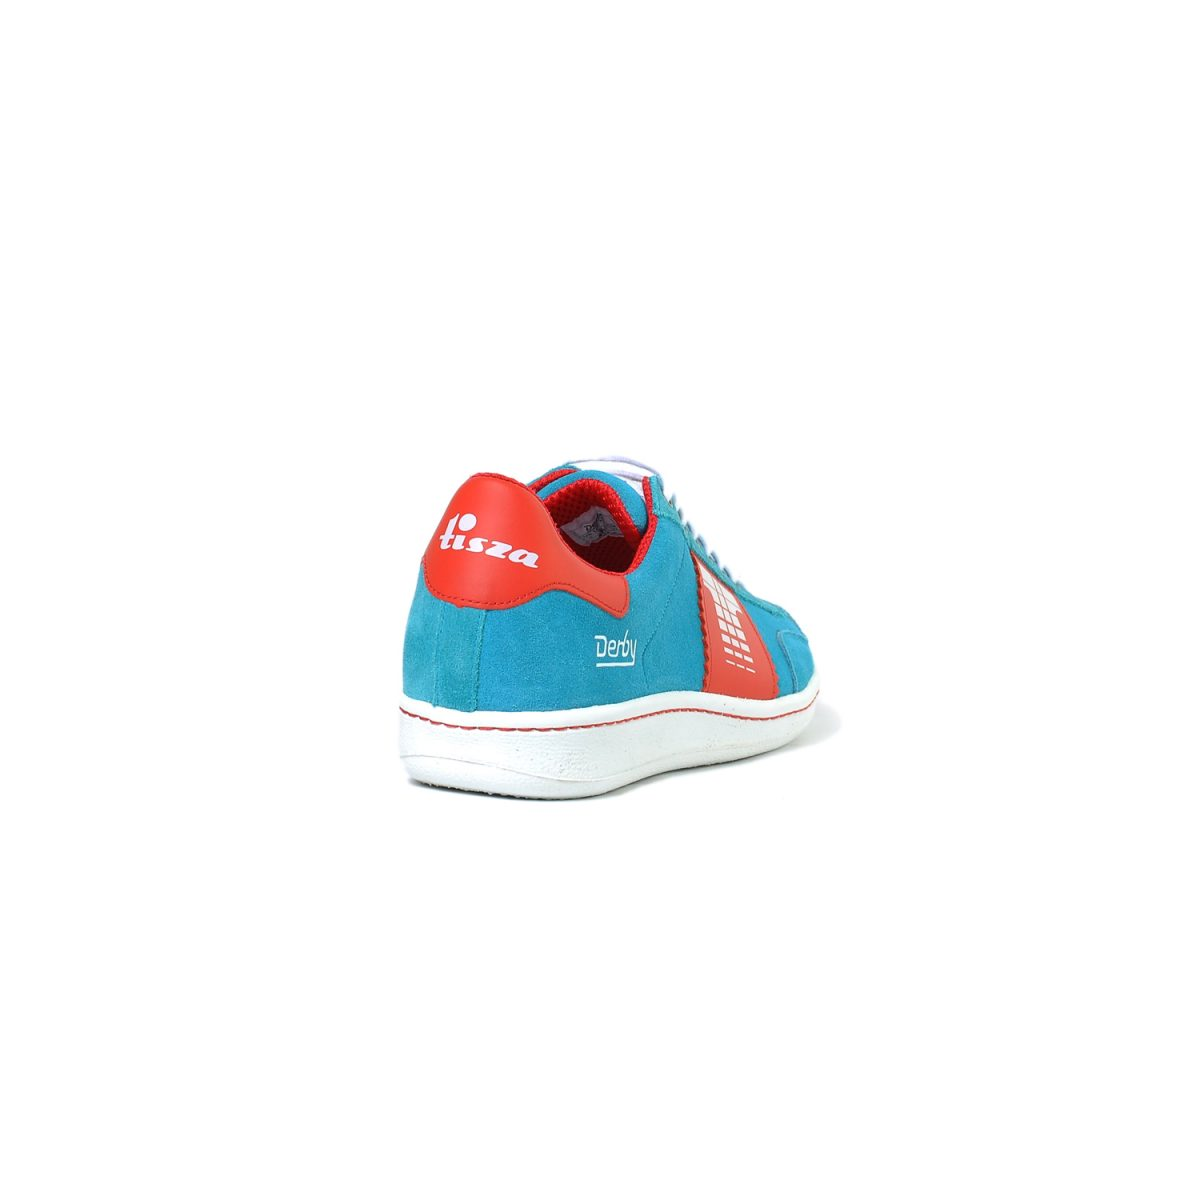 Tisza shoes - Derby - Lightblue-red